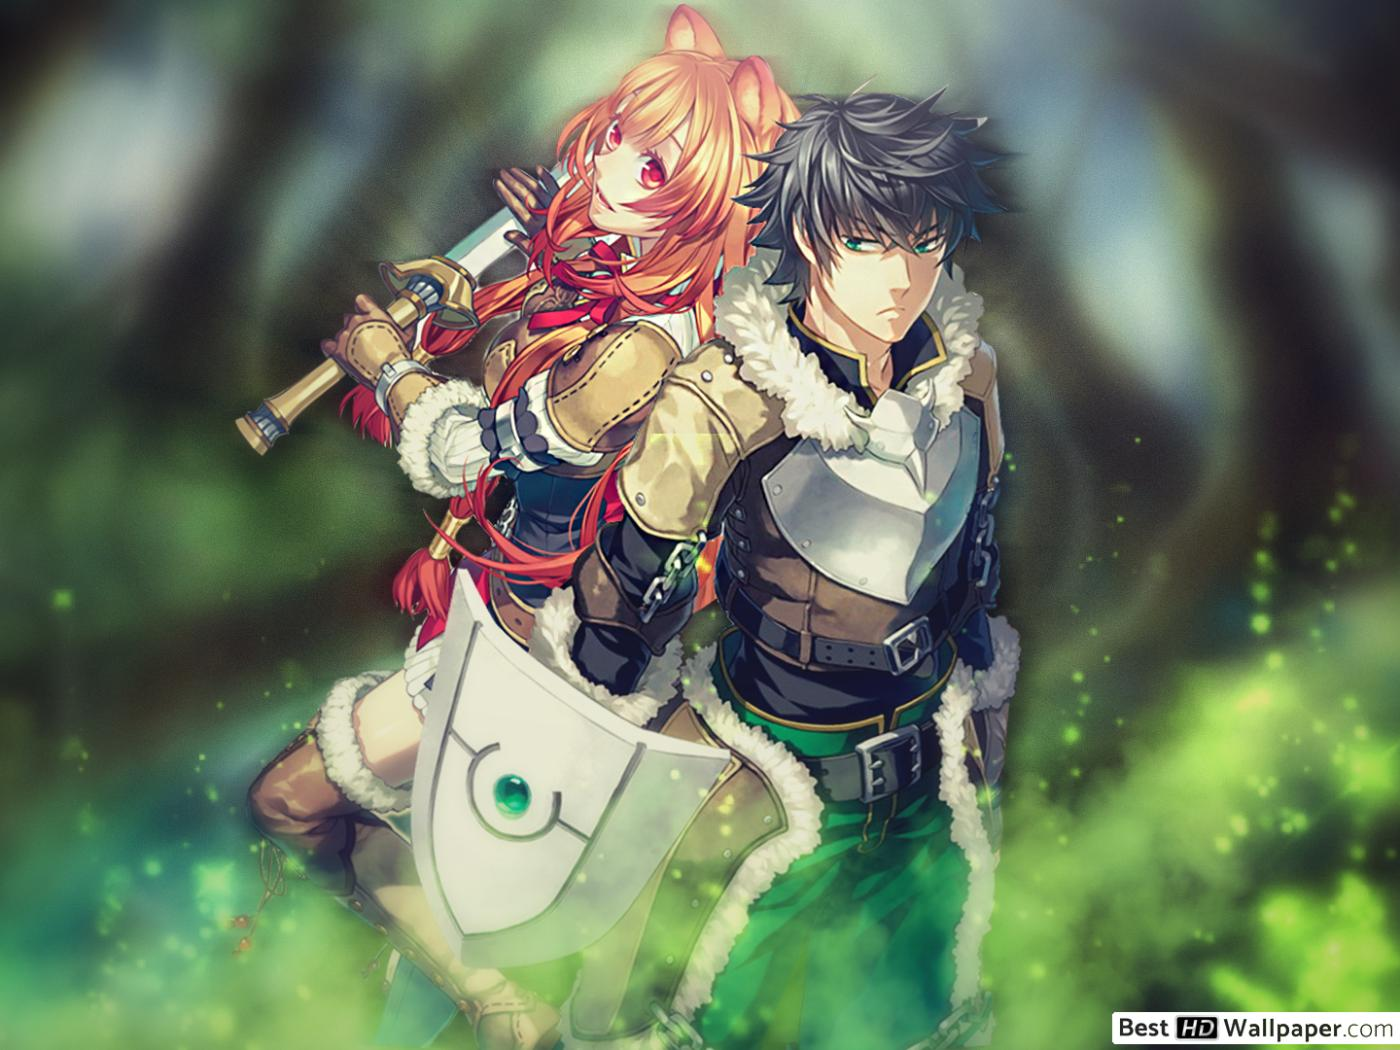 Rising Of The Shield Hero 2254020 Hd Wallpaper Backgrounds Download